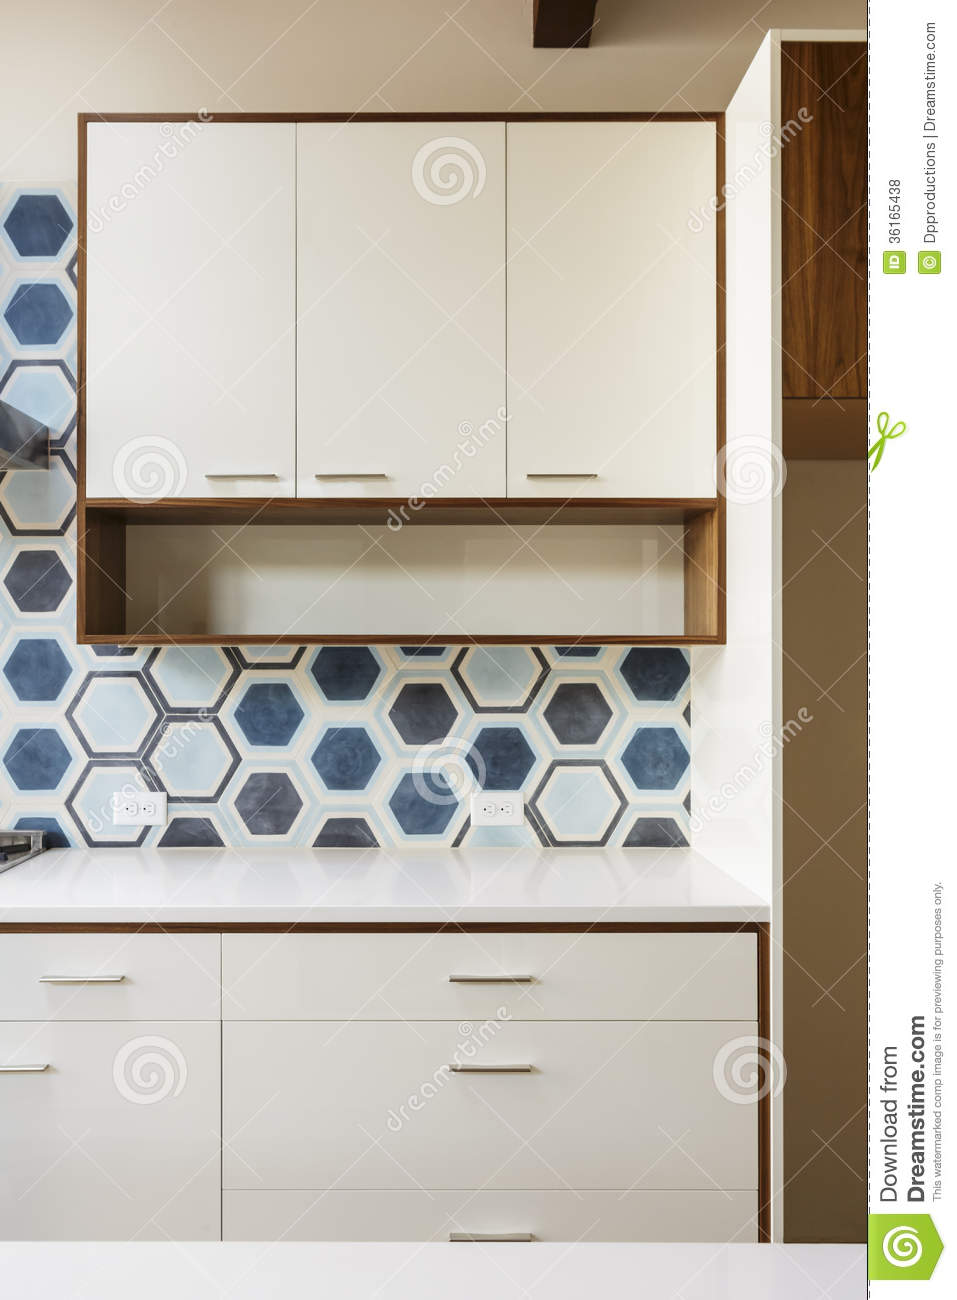 White kitchen cabinet in modern home with blue tile royalty free stock